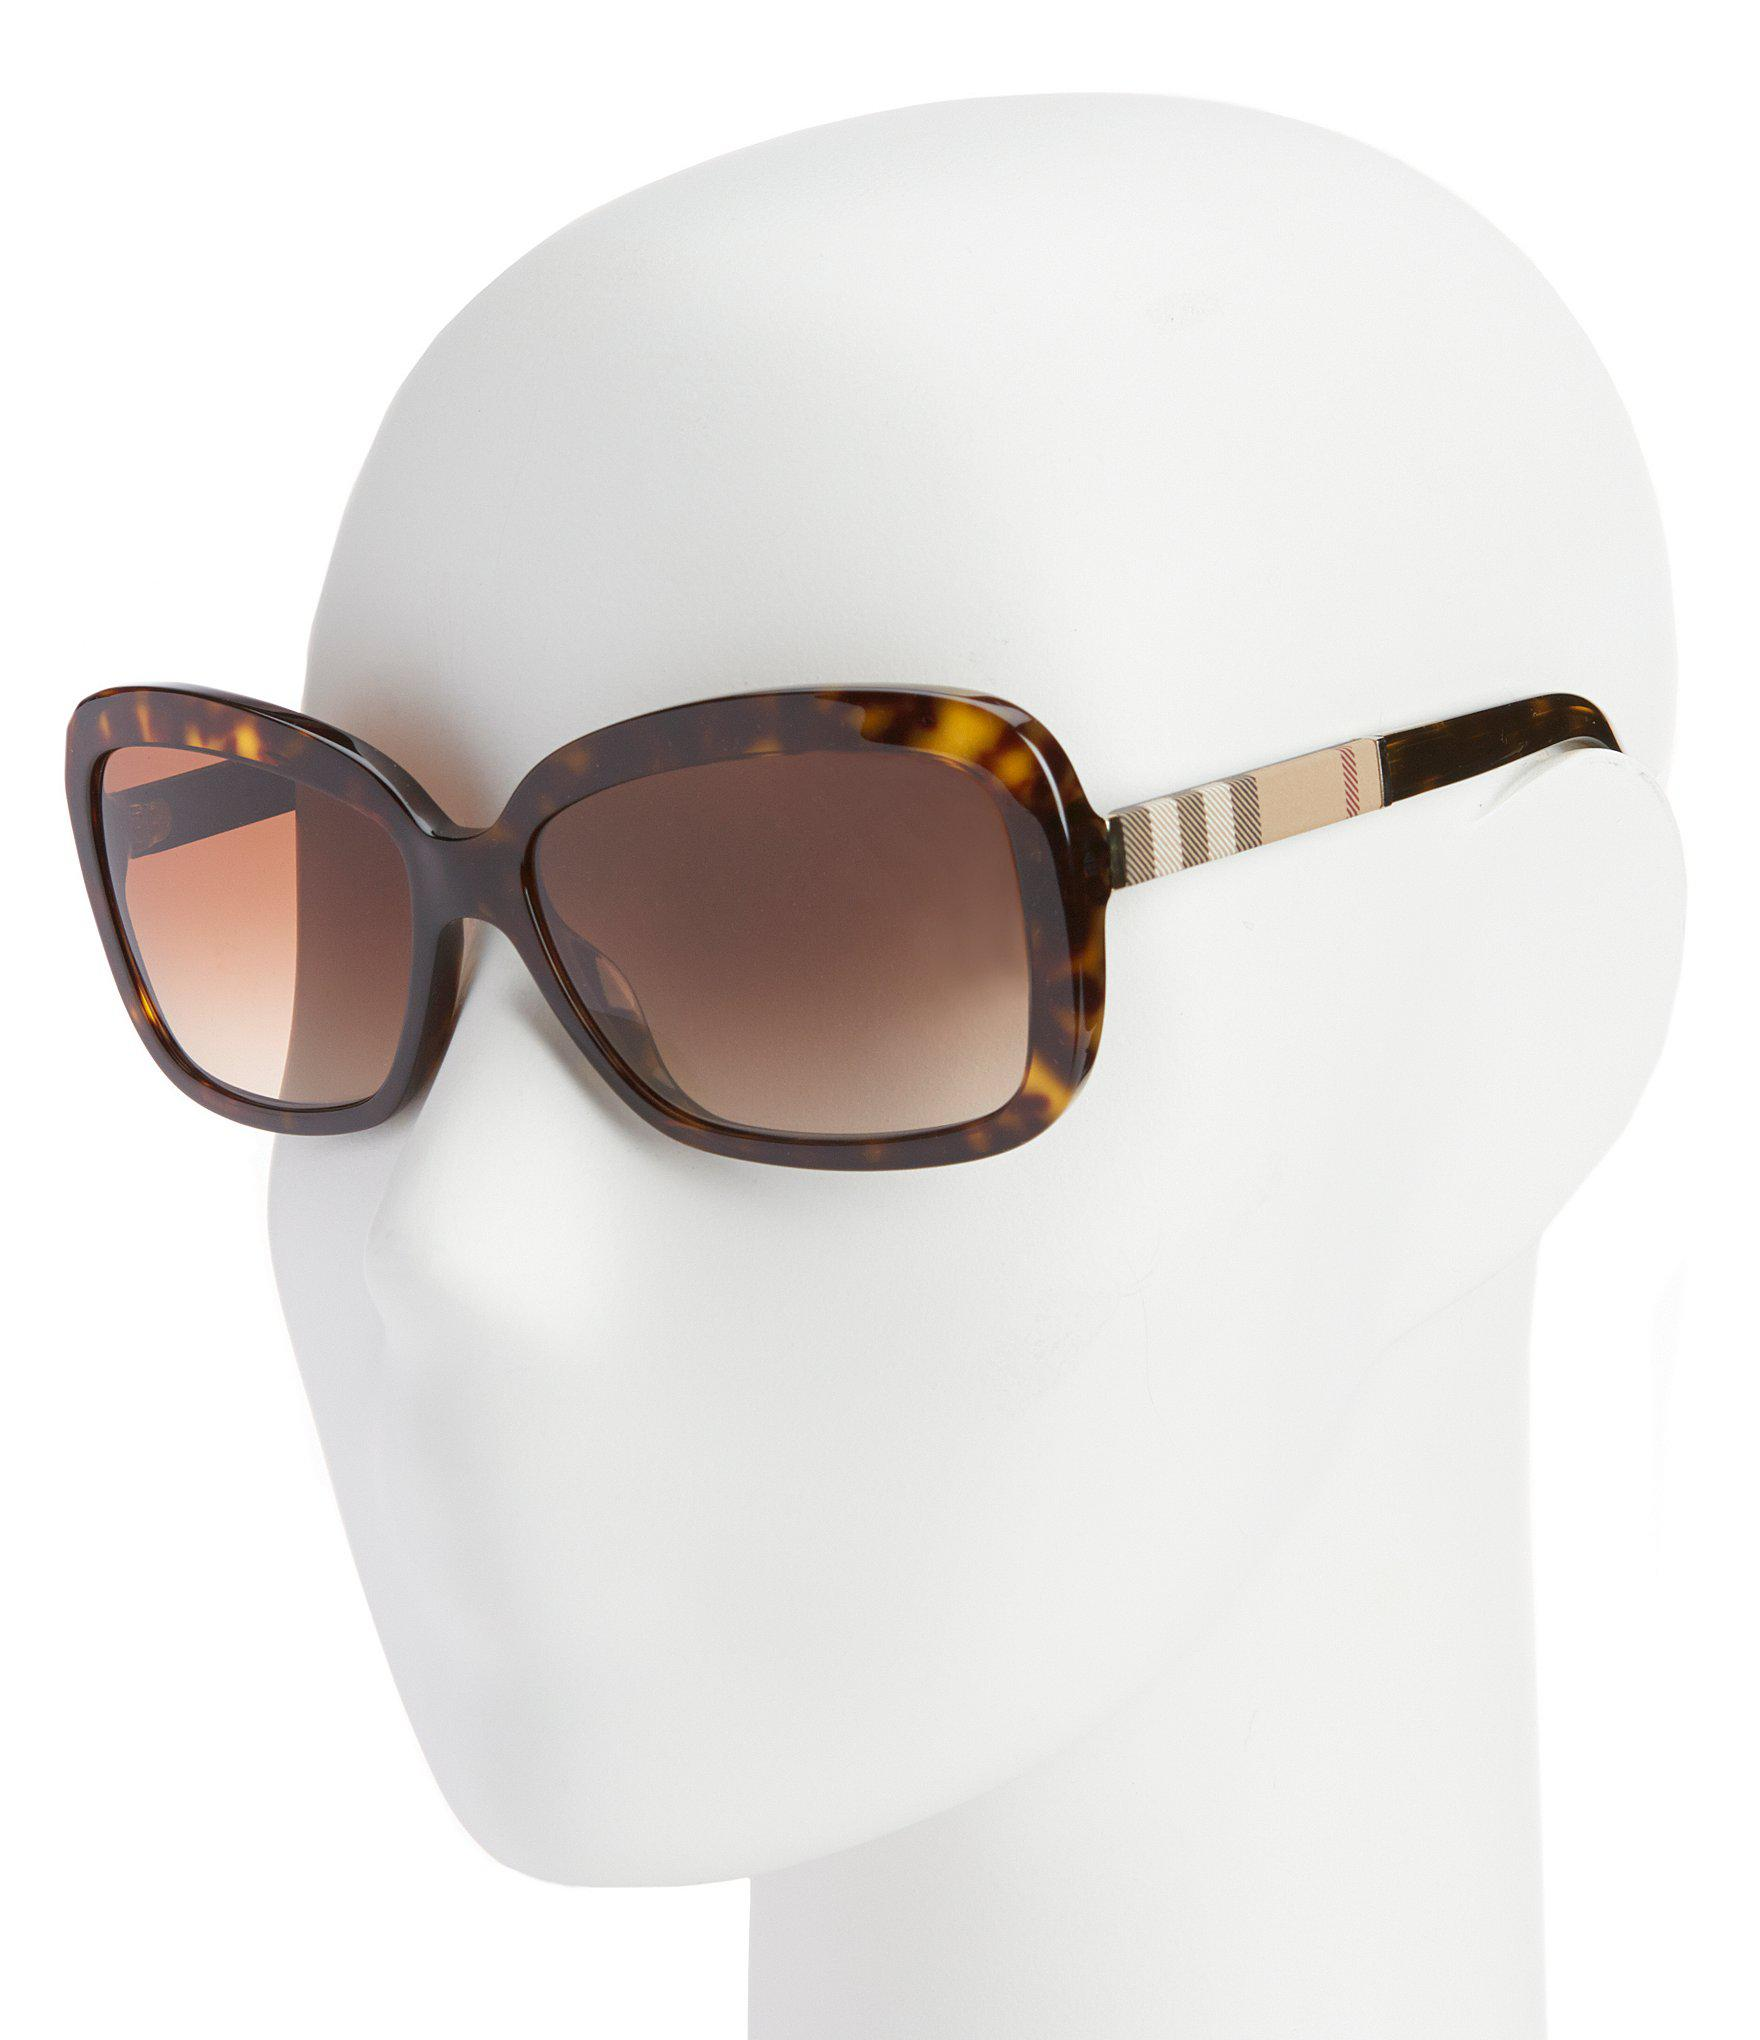 884efd76afd4 Burberry - Brown Canvas Check Square Gradient Sunglasses - Lyst. View  fullscreen